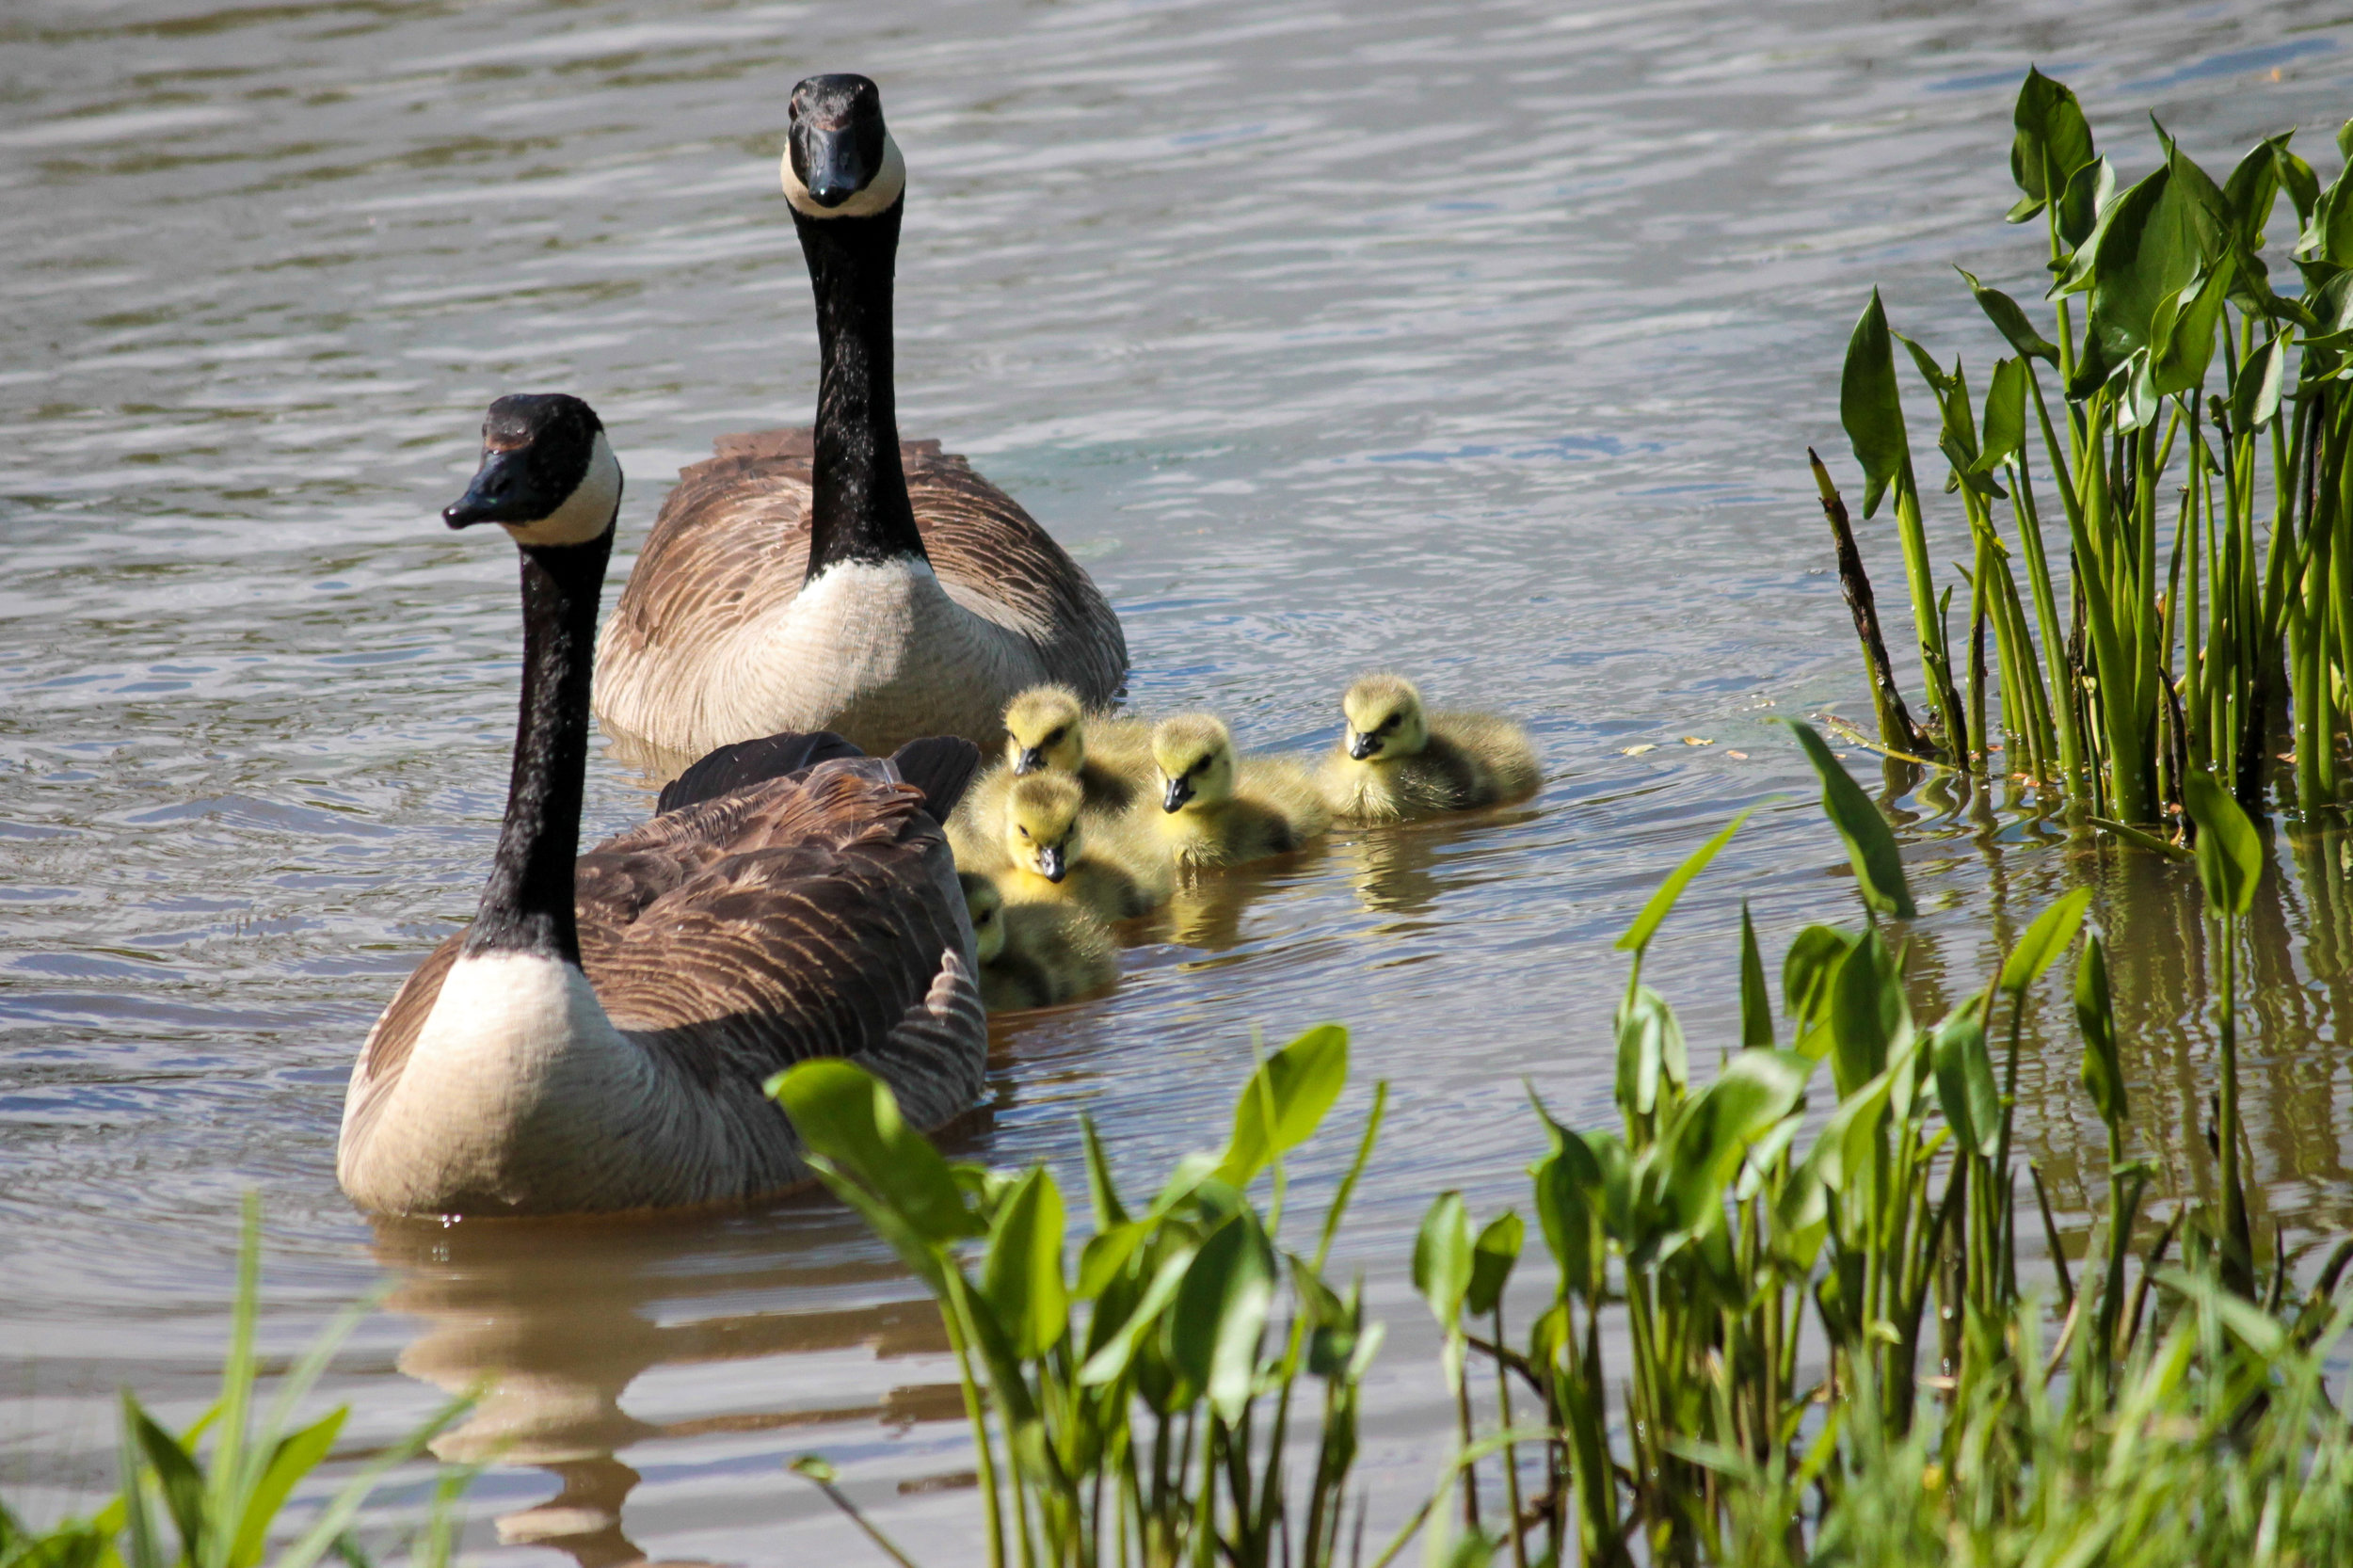 A family of geese in Granville, Ohio.